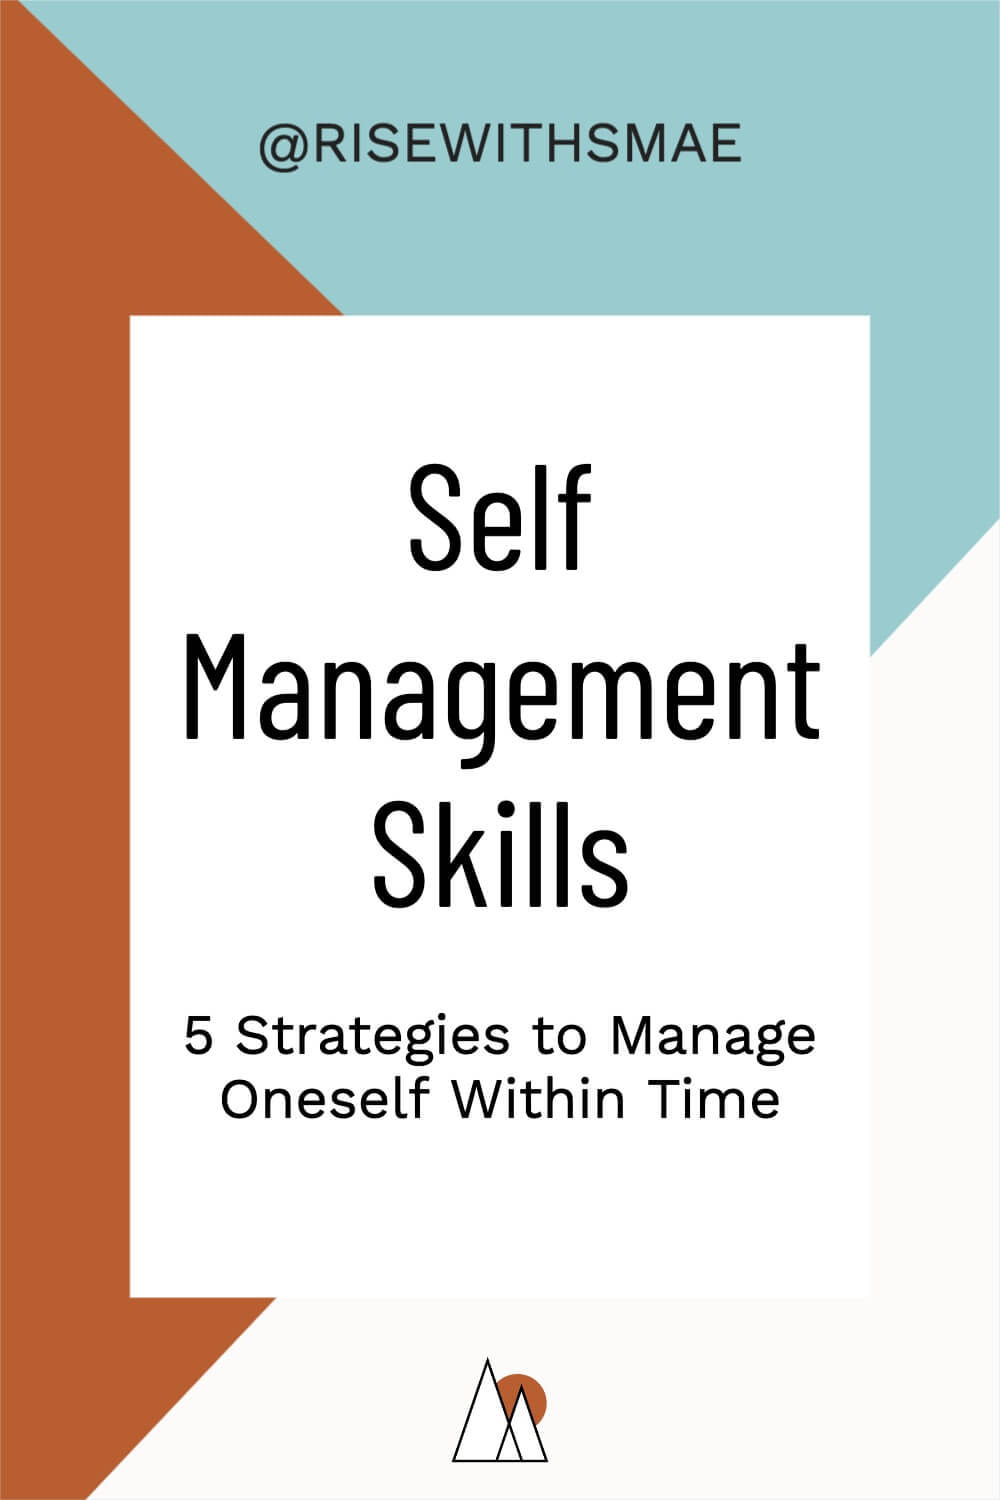 Self Management Skills: 5 Strategies to Manage Oneself Within Time